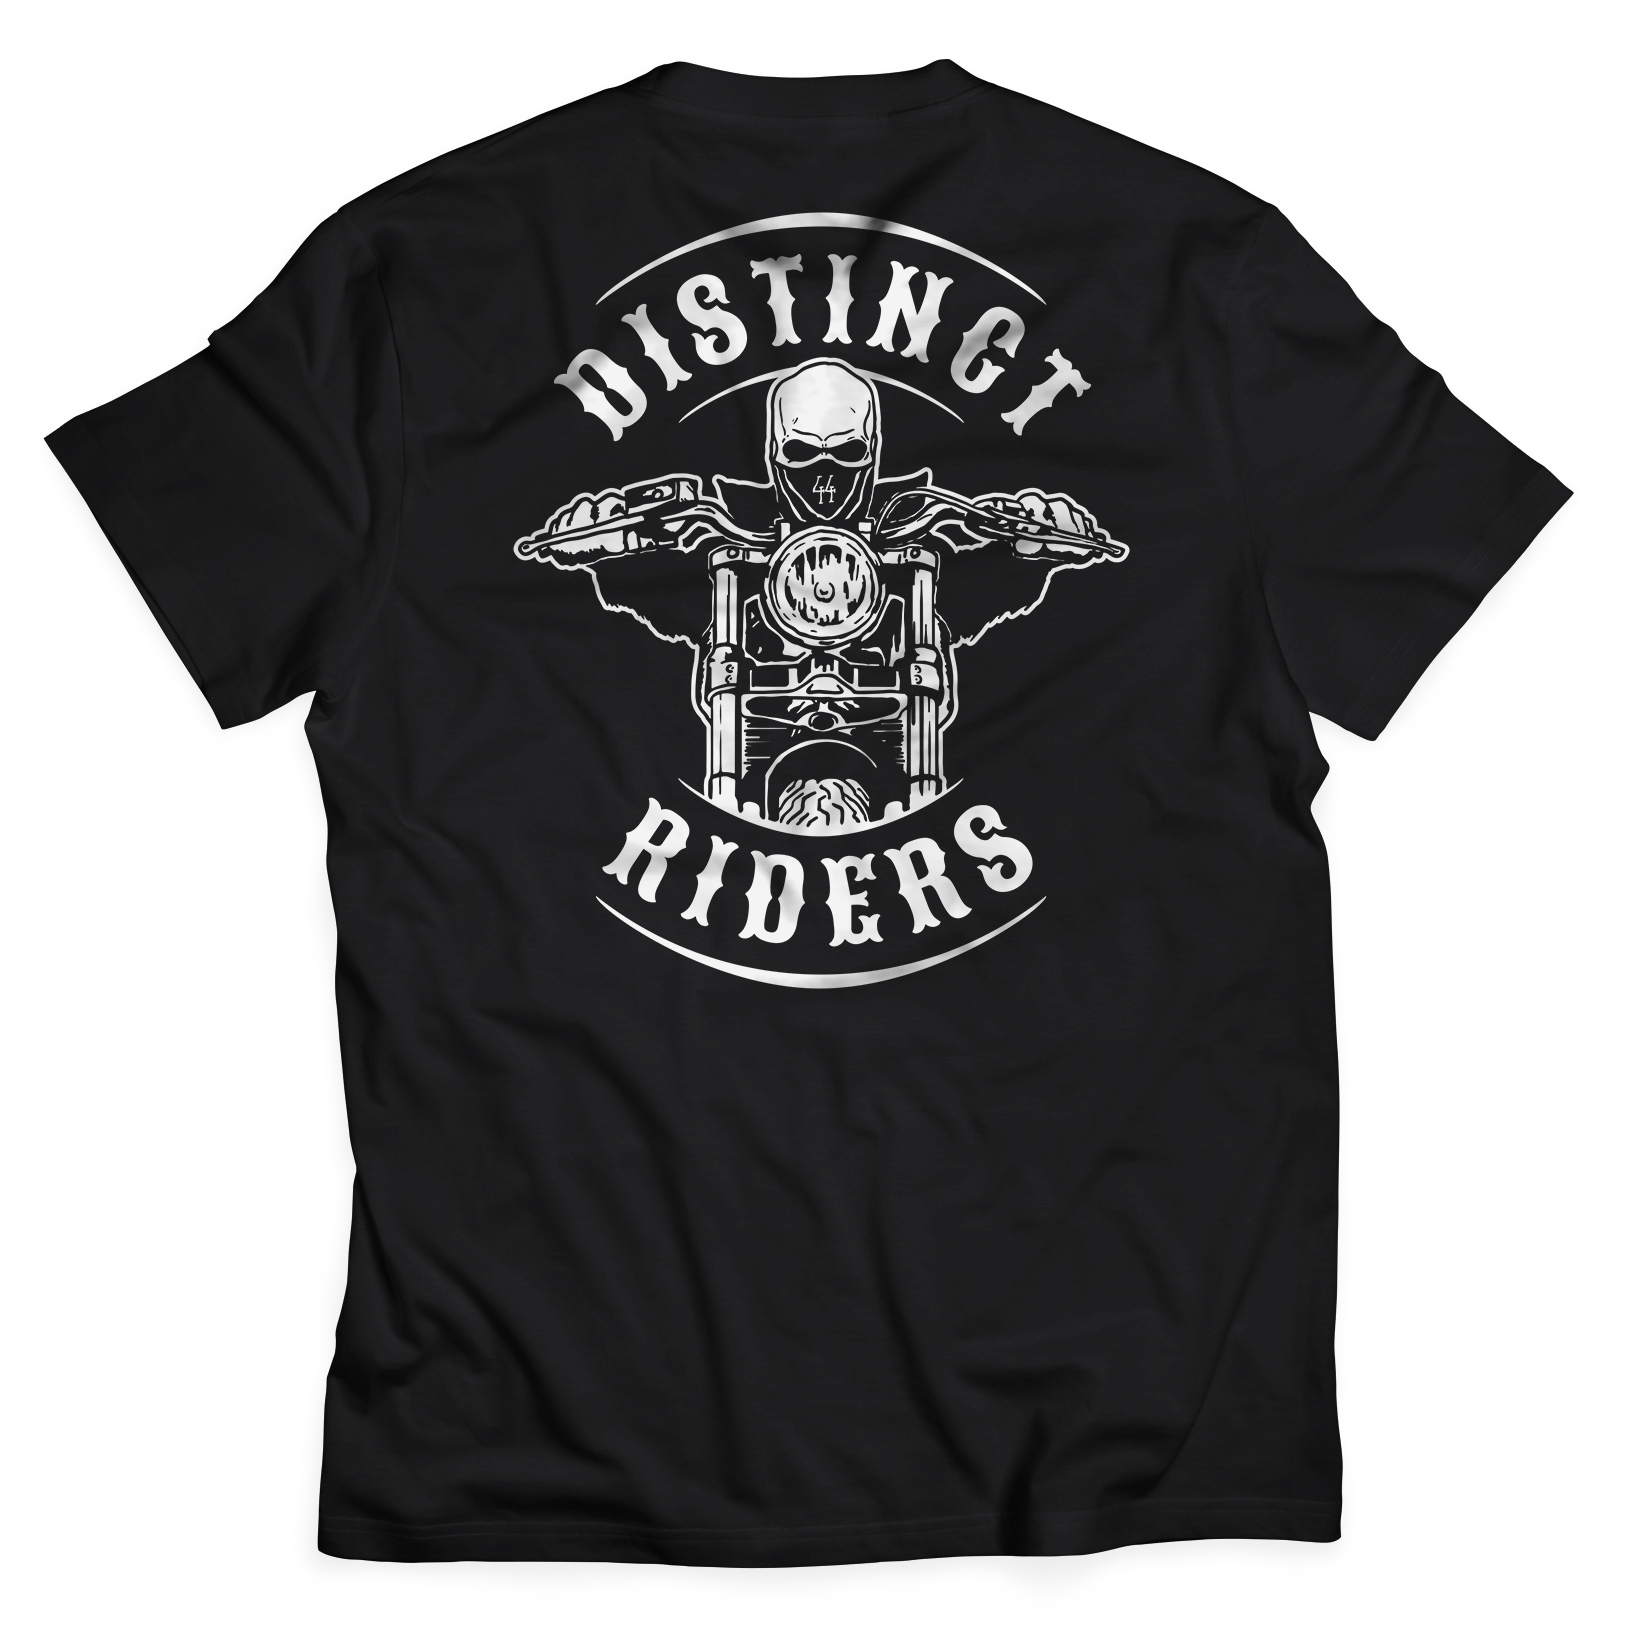 distinct-riders-classic-black